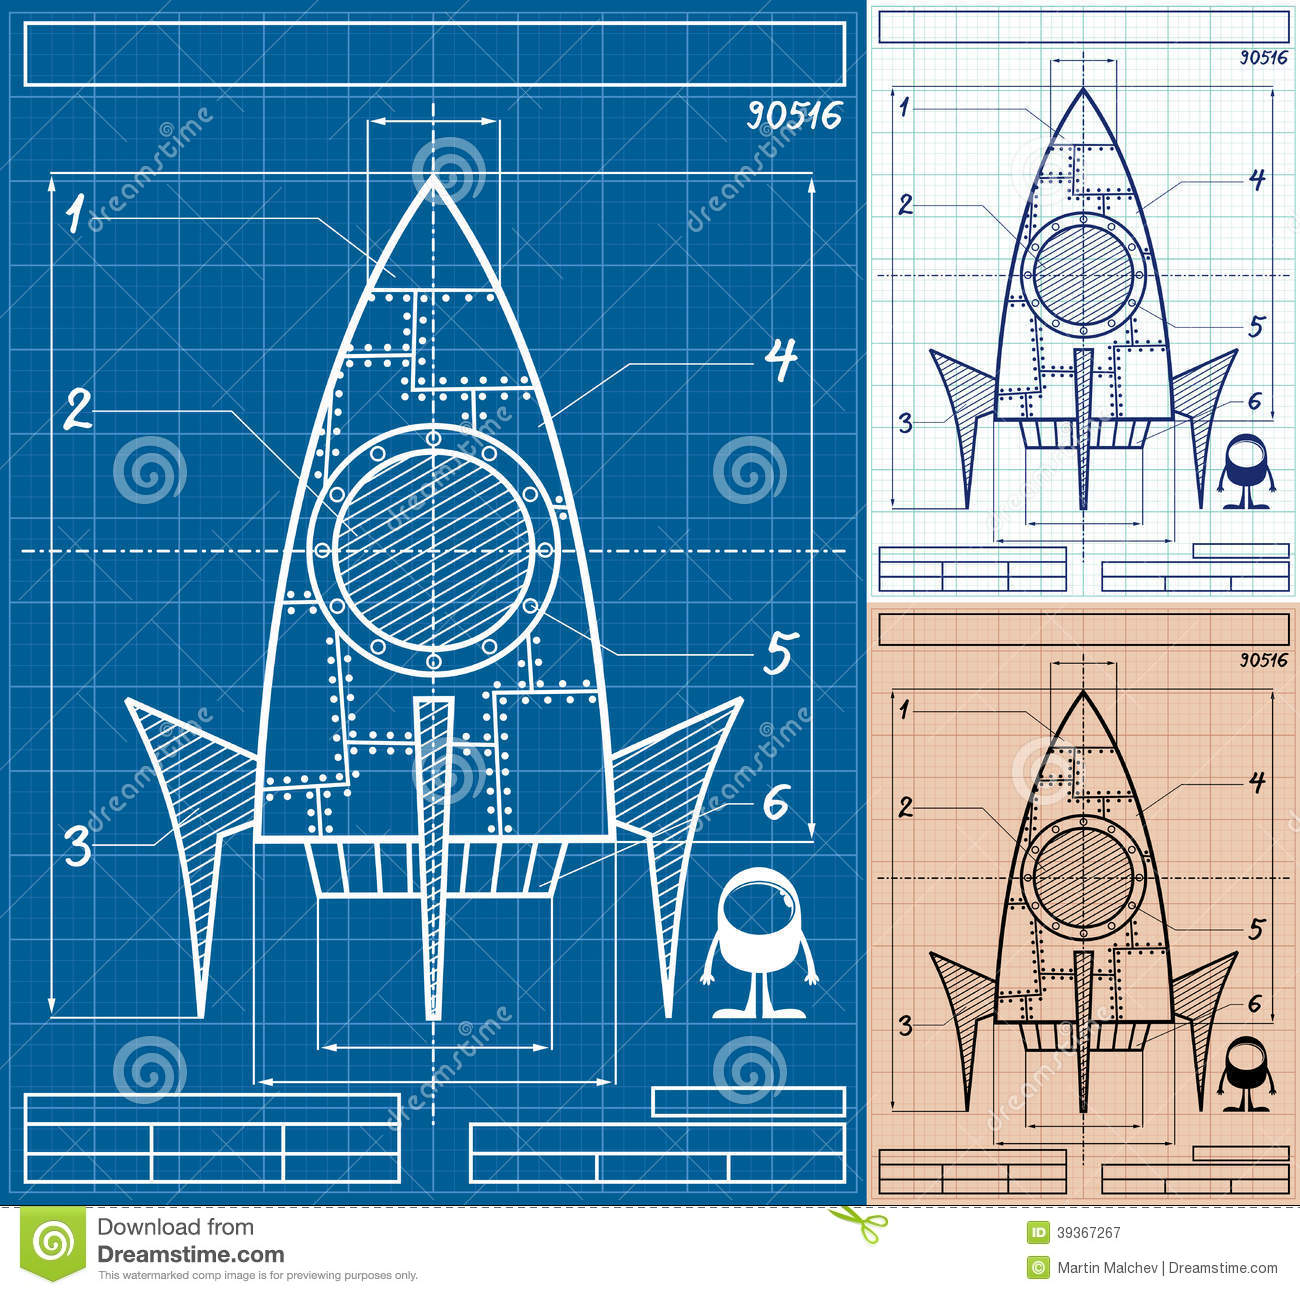 Rocket blueprint cartoon stock vector illustration of for Online blueprints maker